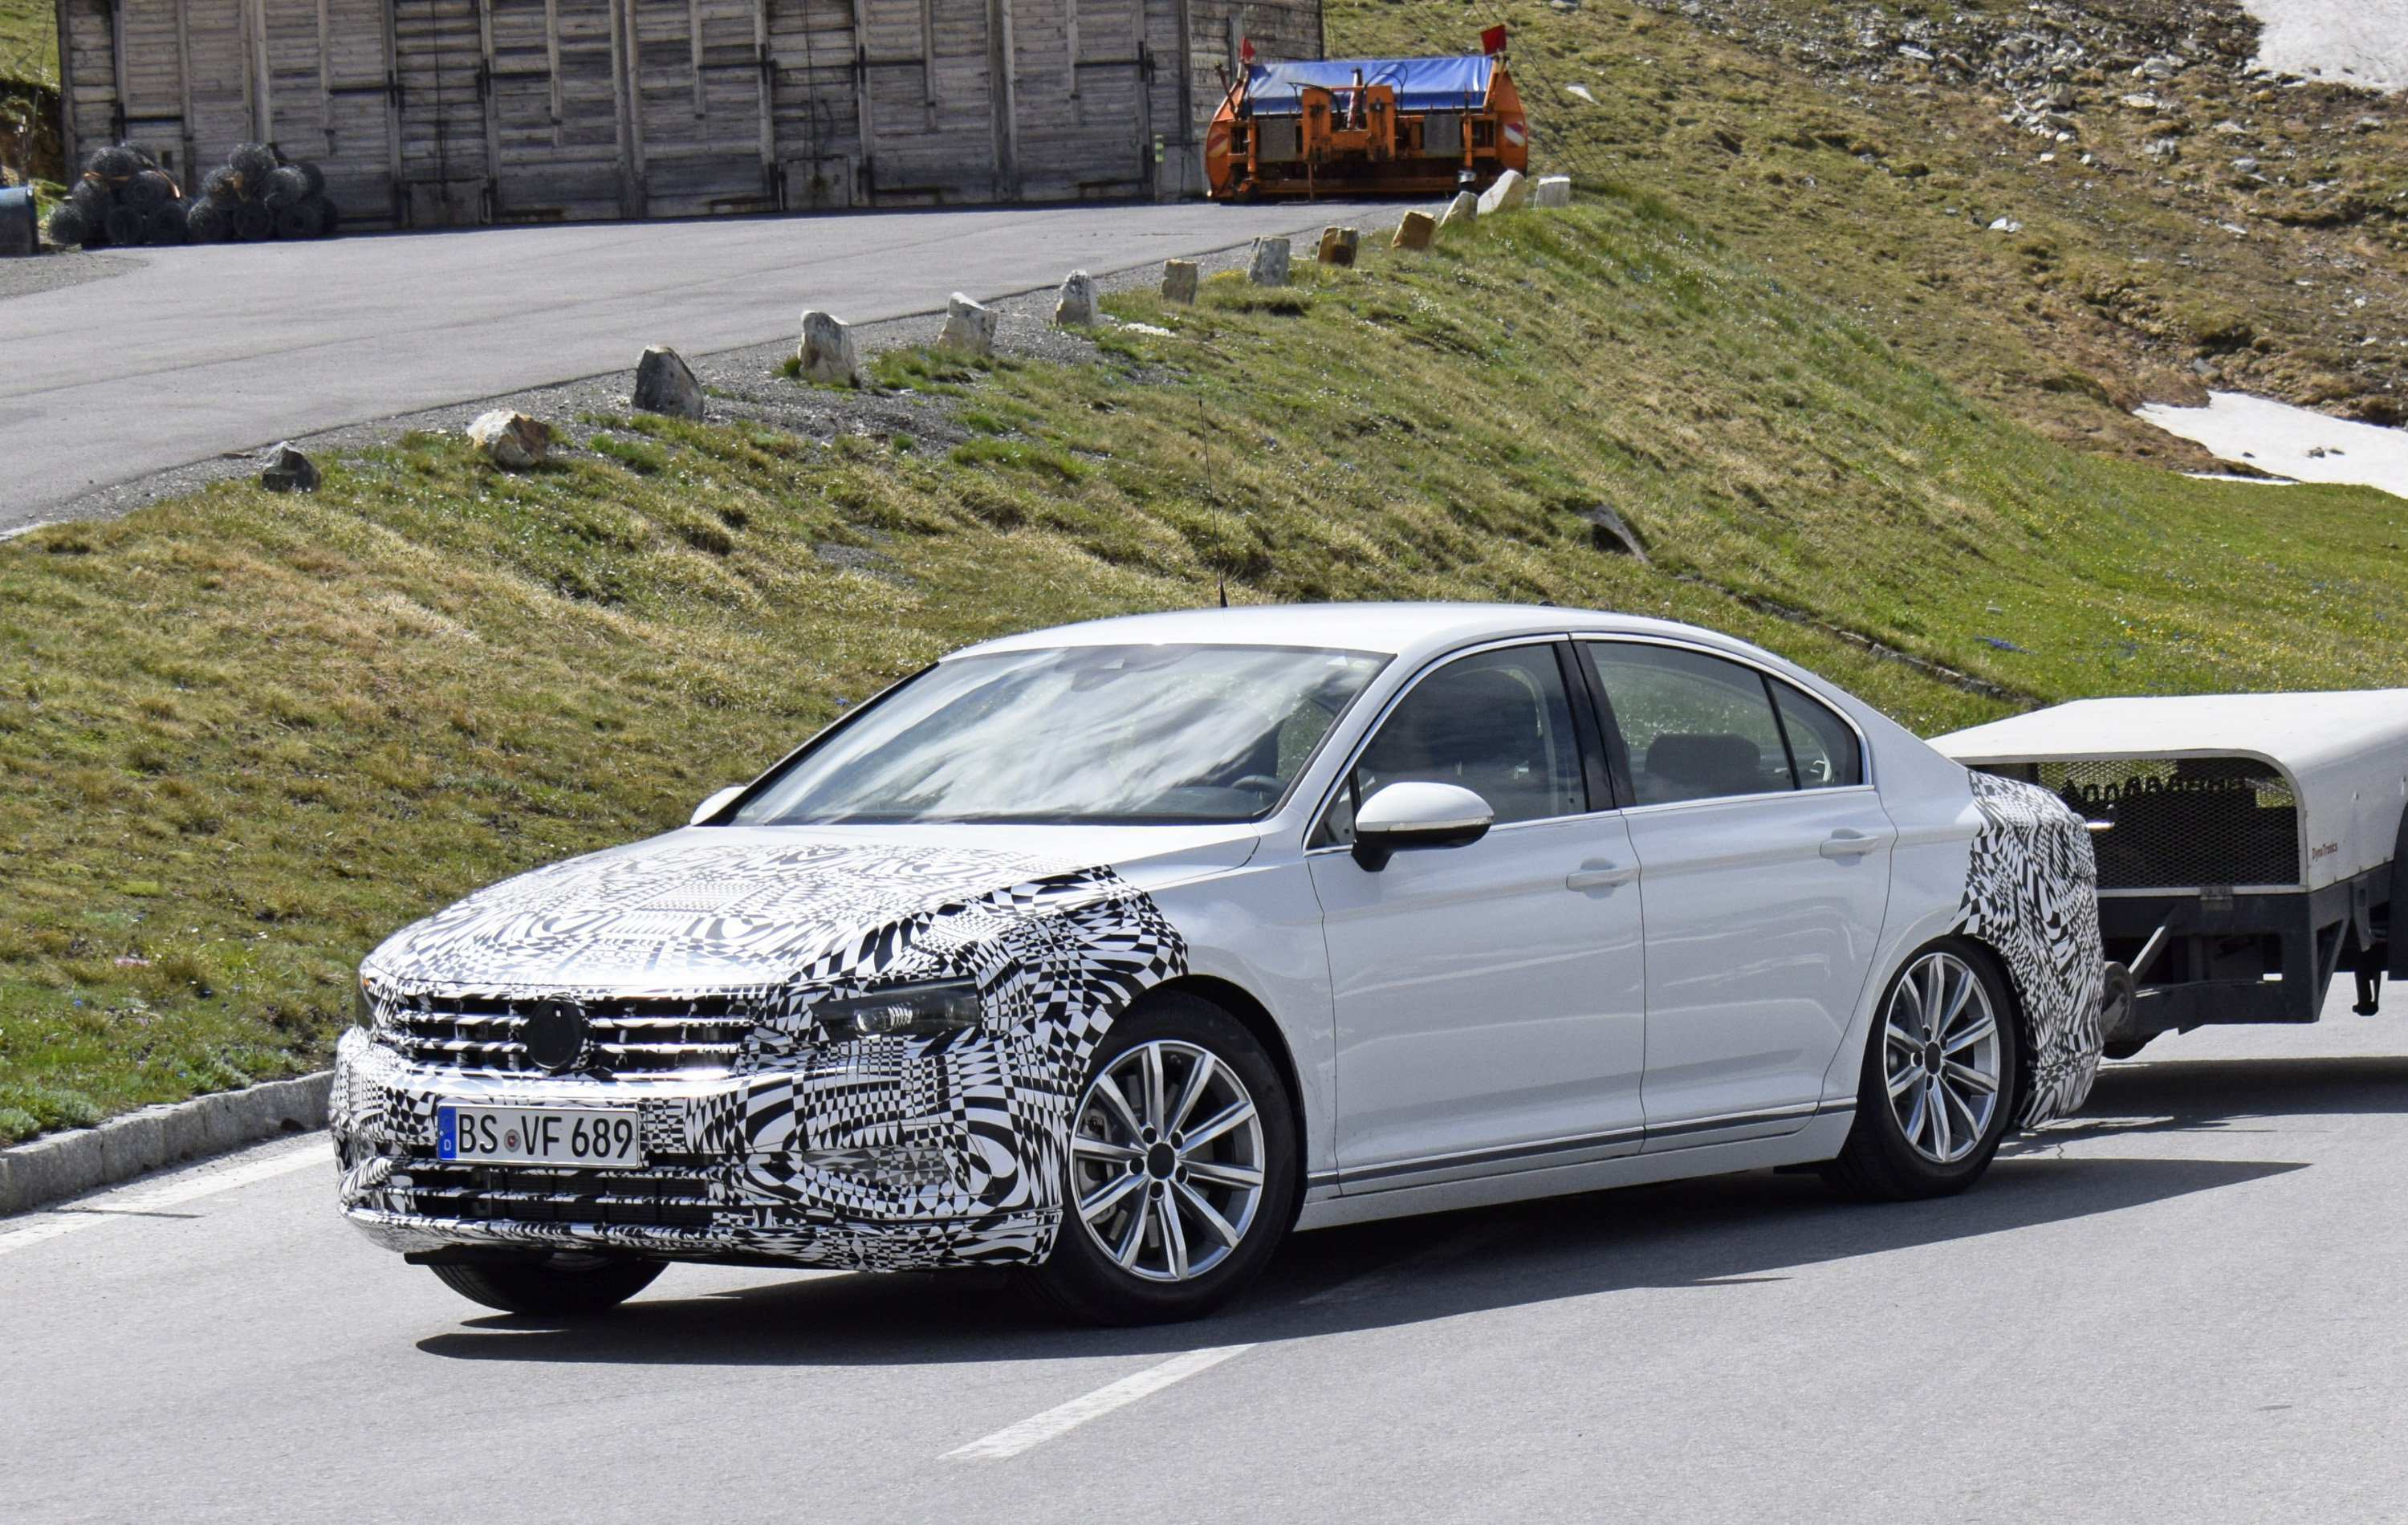 62 The Best 2019 Vw Cc Ratings